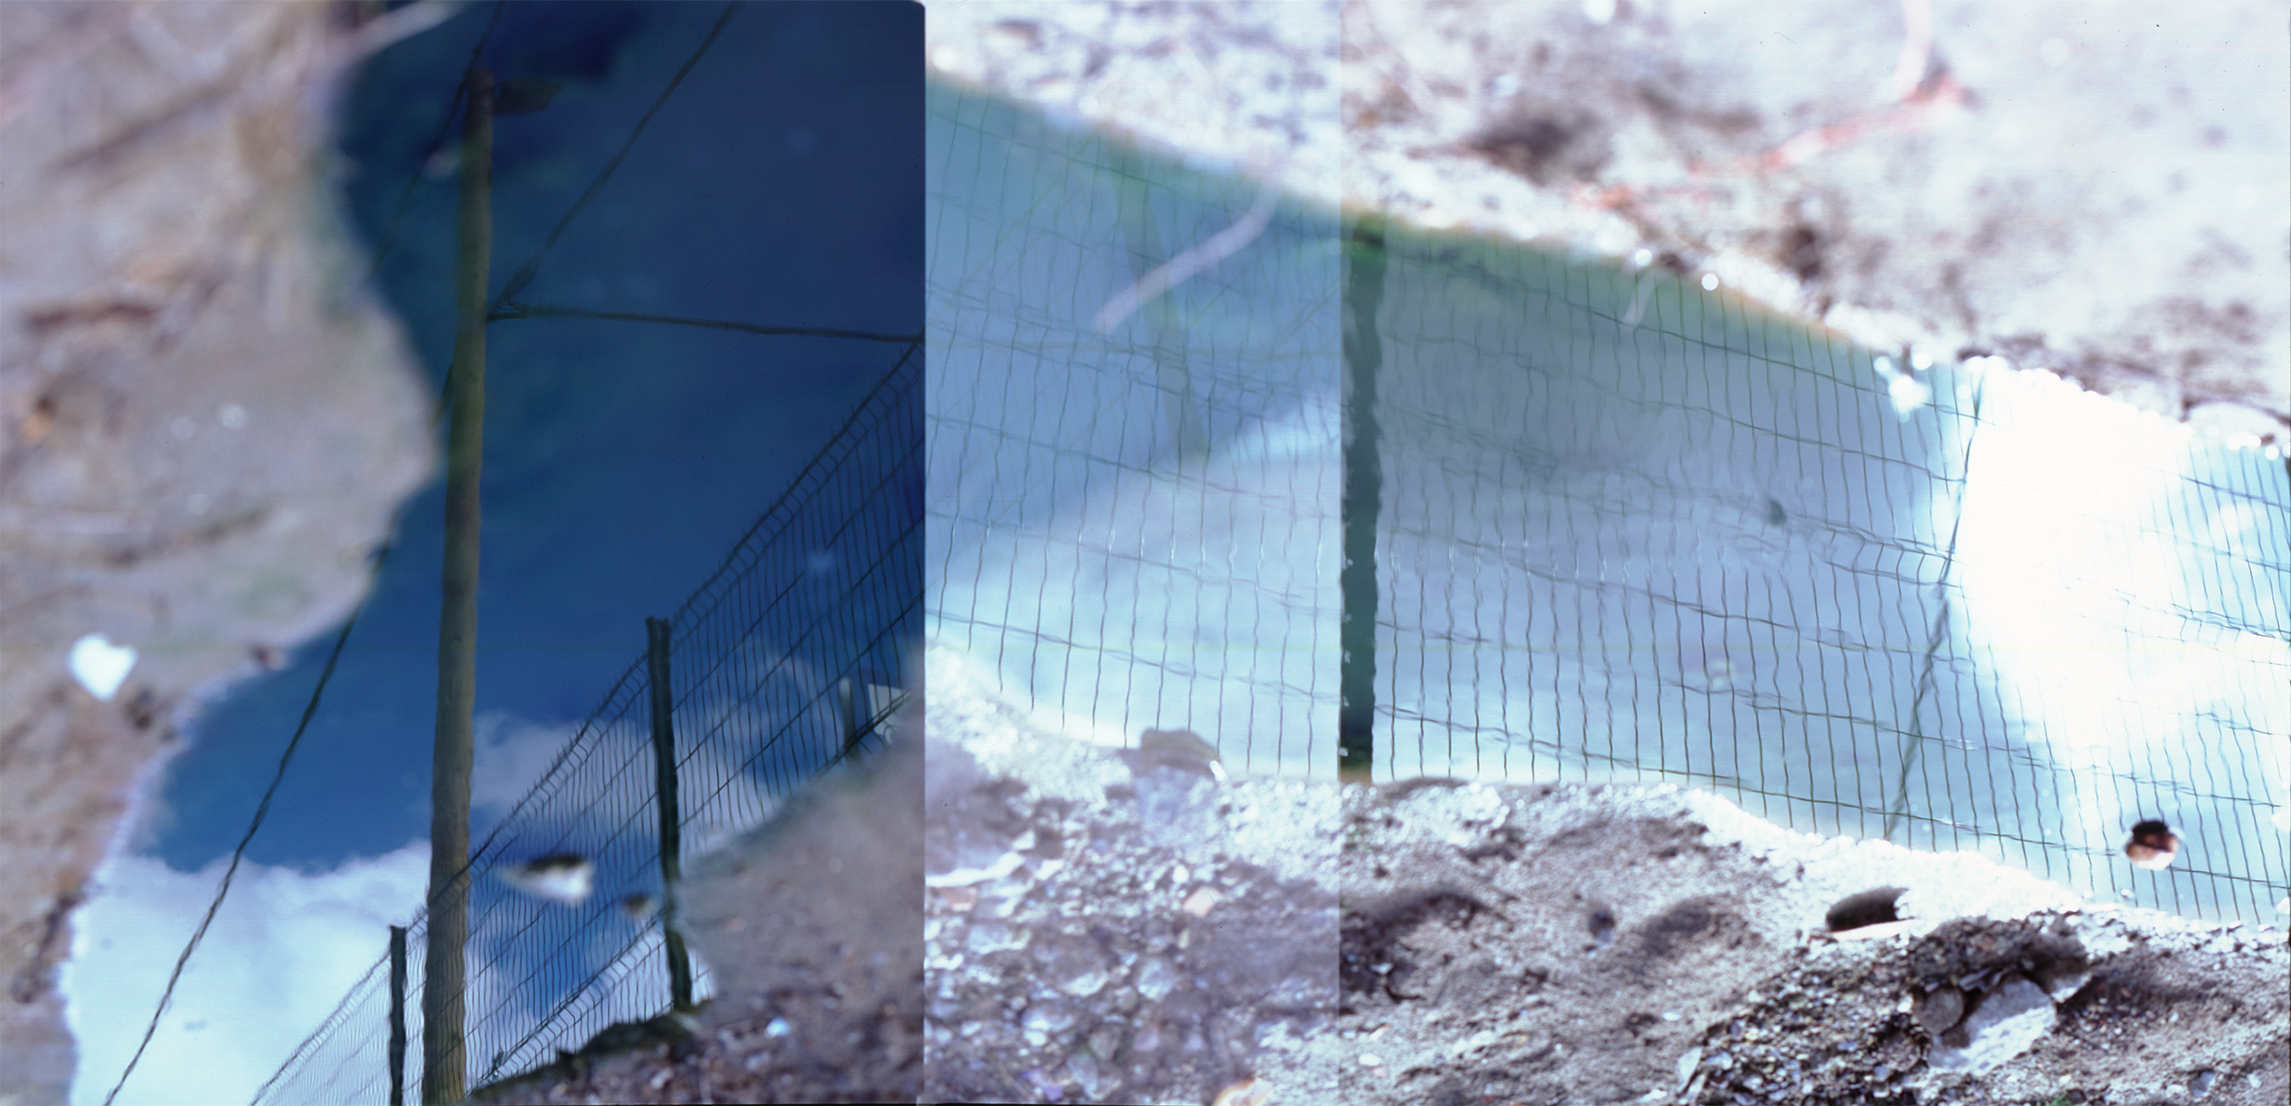 Calais the jungle refugees camp-fence-reflection